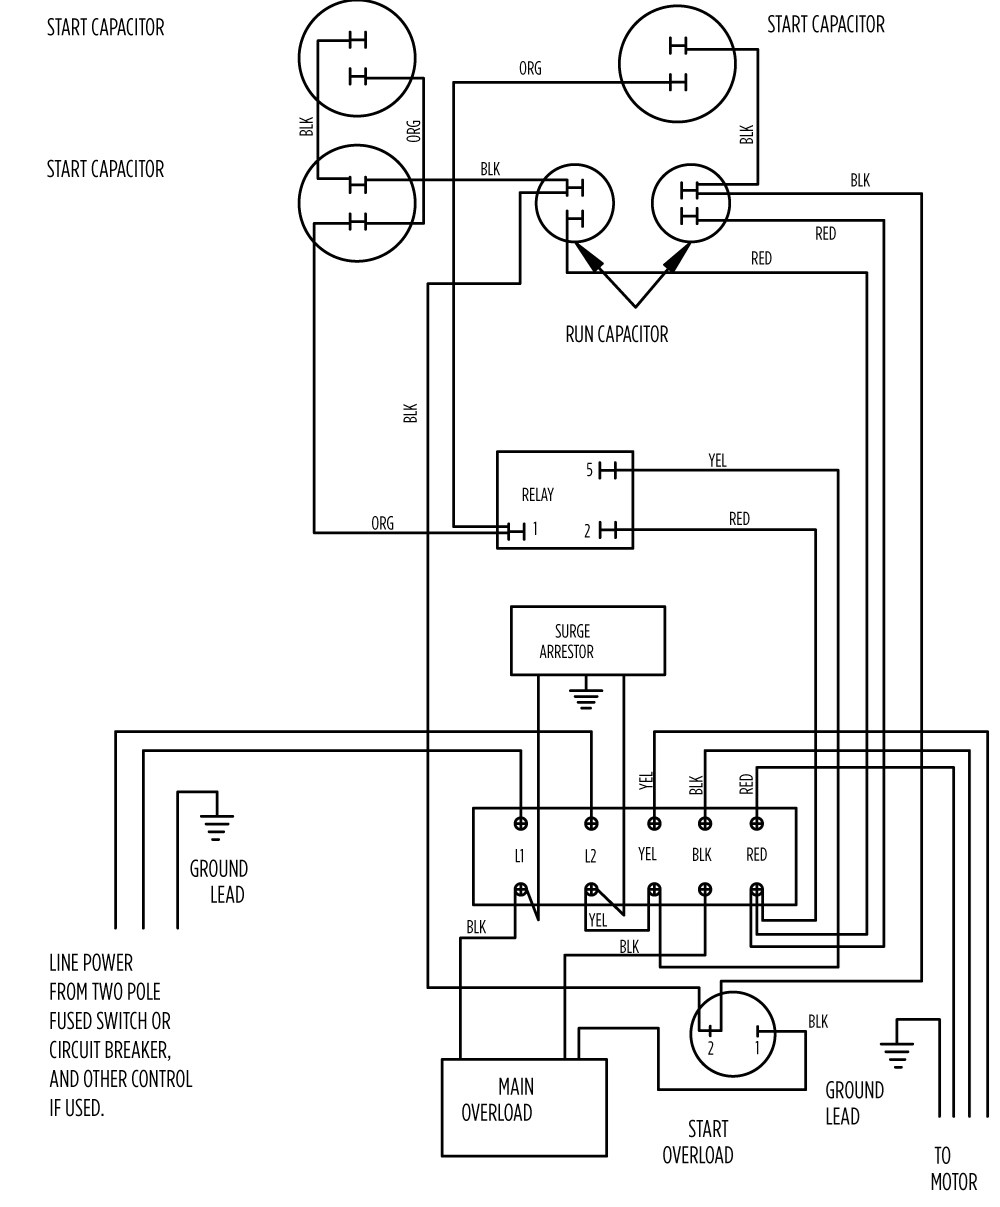 10 hp standard 282 202 9210 or 282 202 9230_aim gallery?format=jpg&quality=80 aim manual page 57 single phase motors and controls motor electric motor wiring diagram at arjmand.co